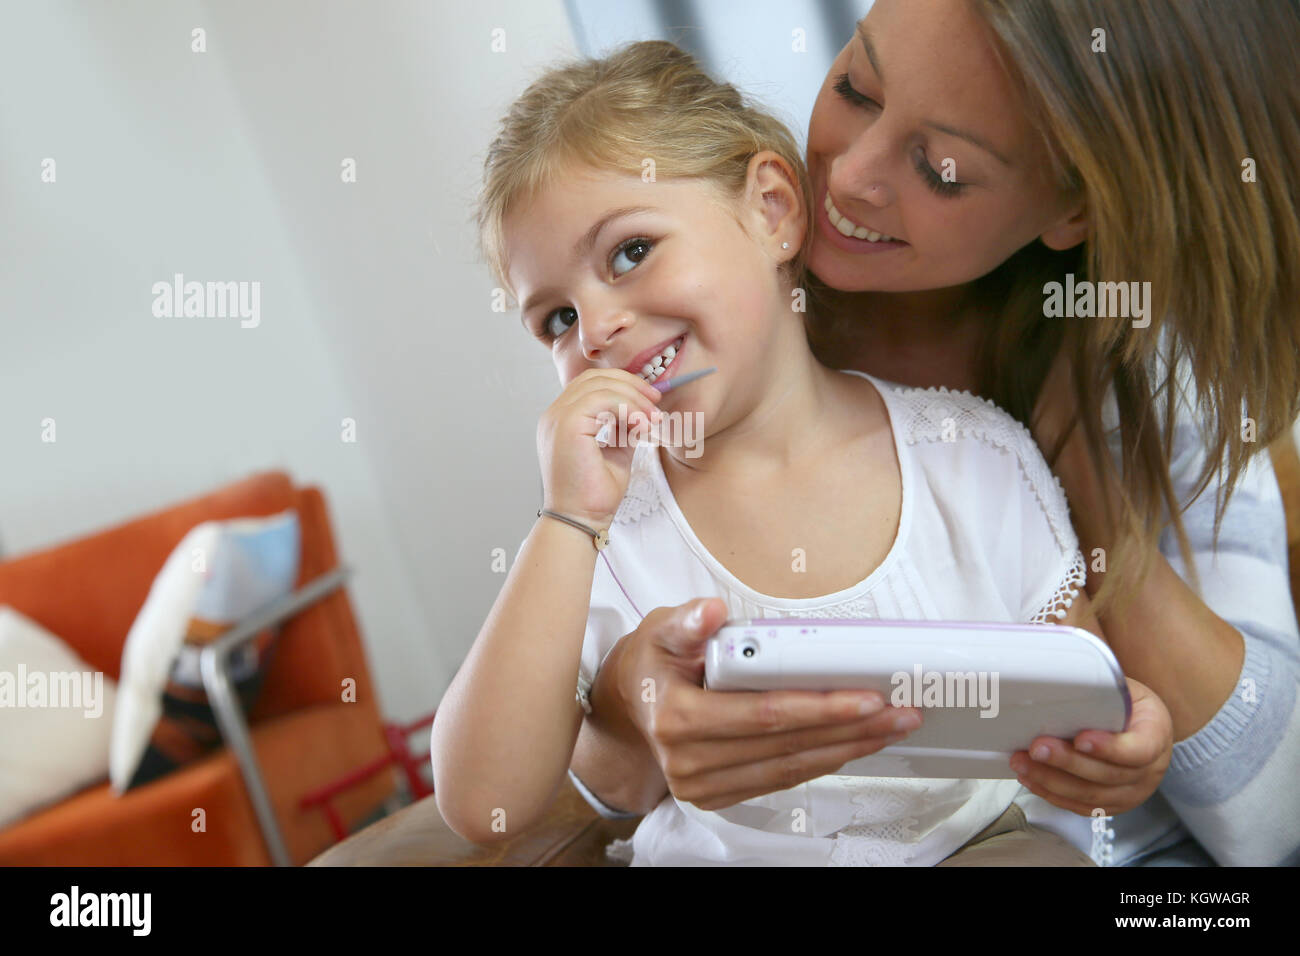 Mommy with little girl playing with video game player - Stock Image